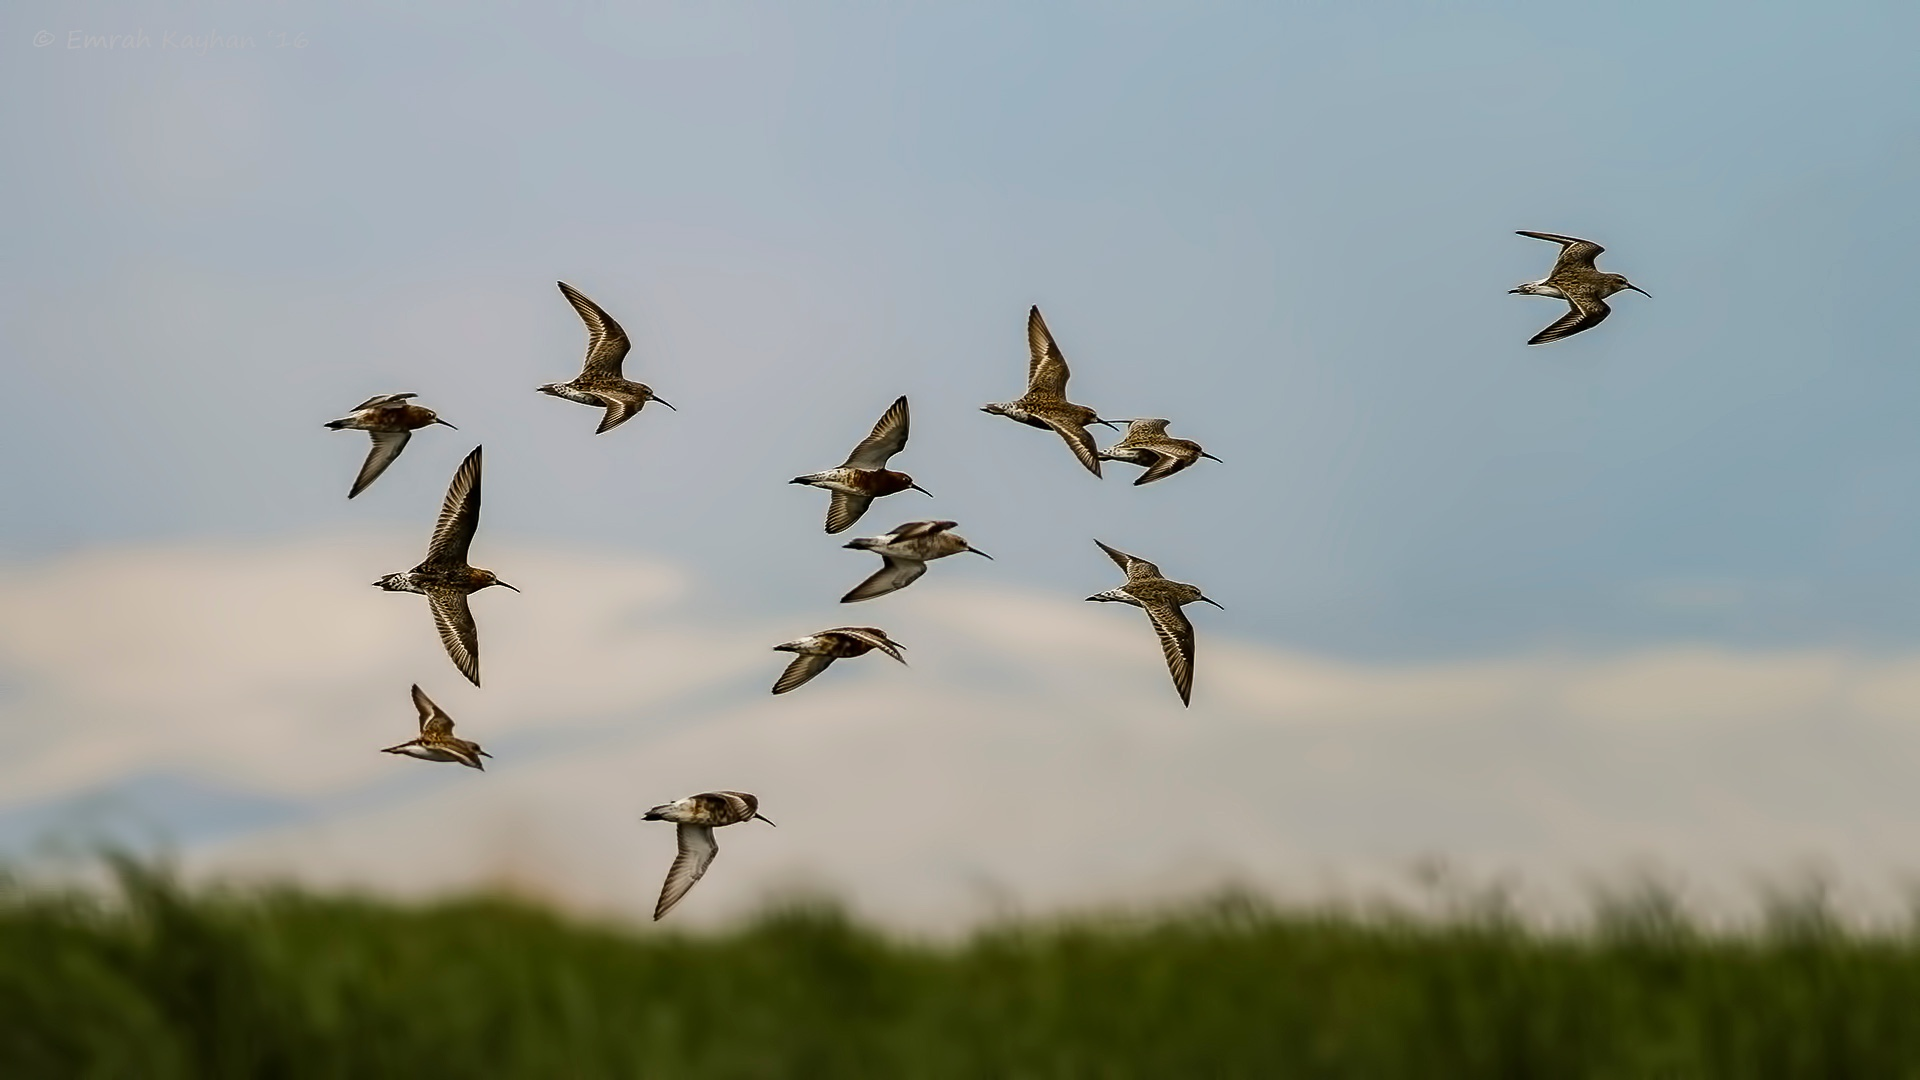 Curlew sandpiper by EmrahKayhan